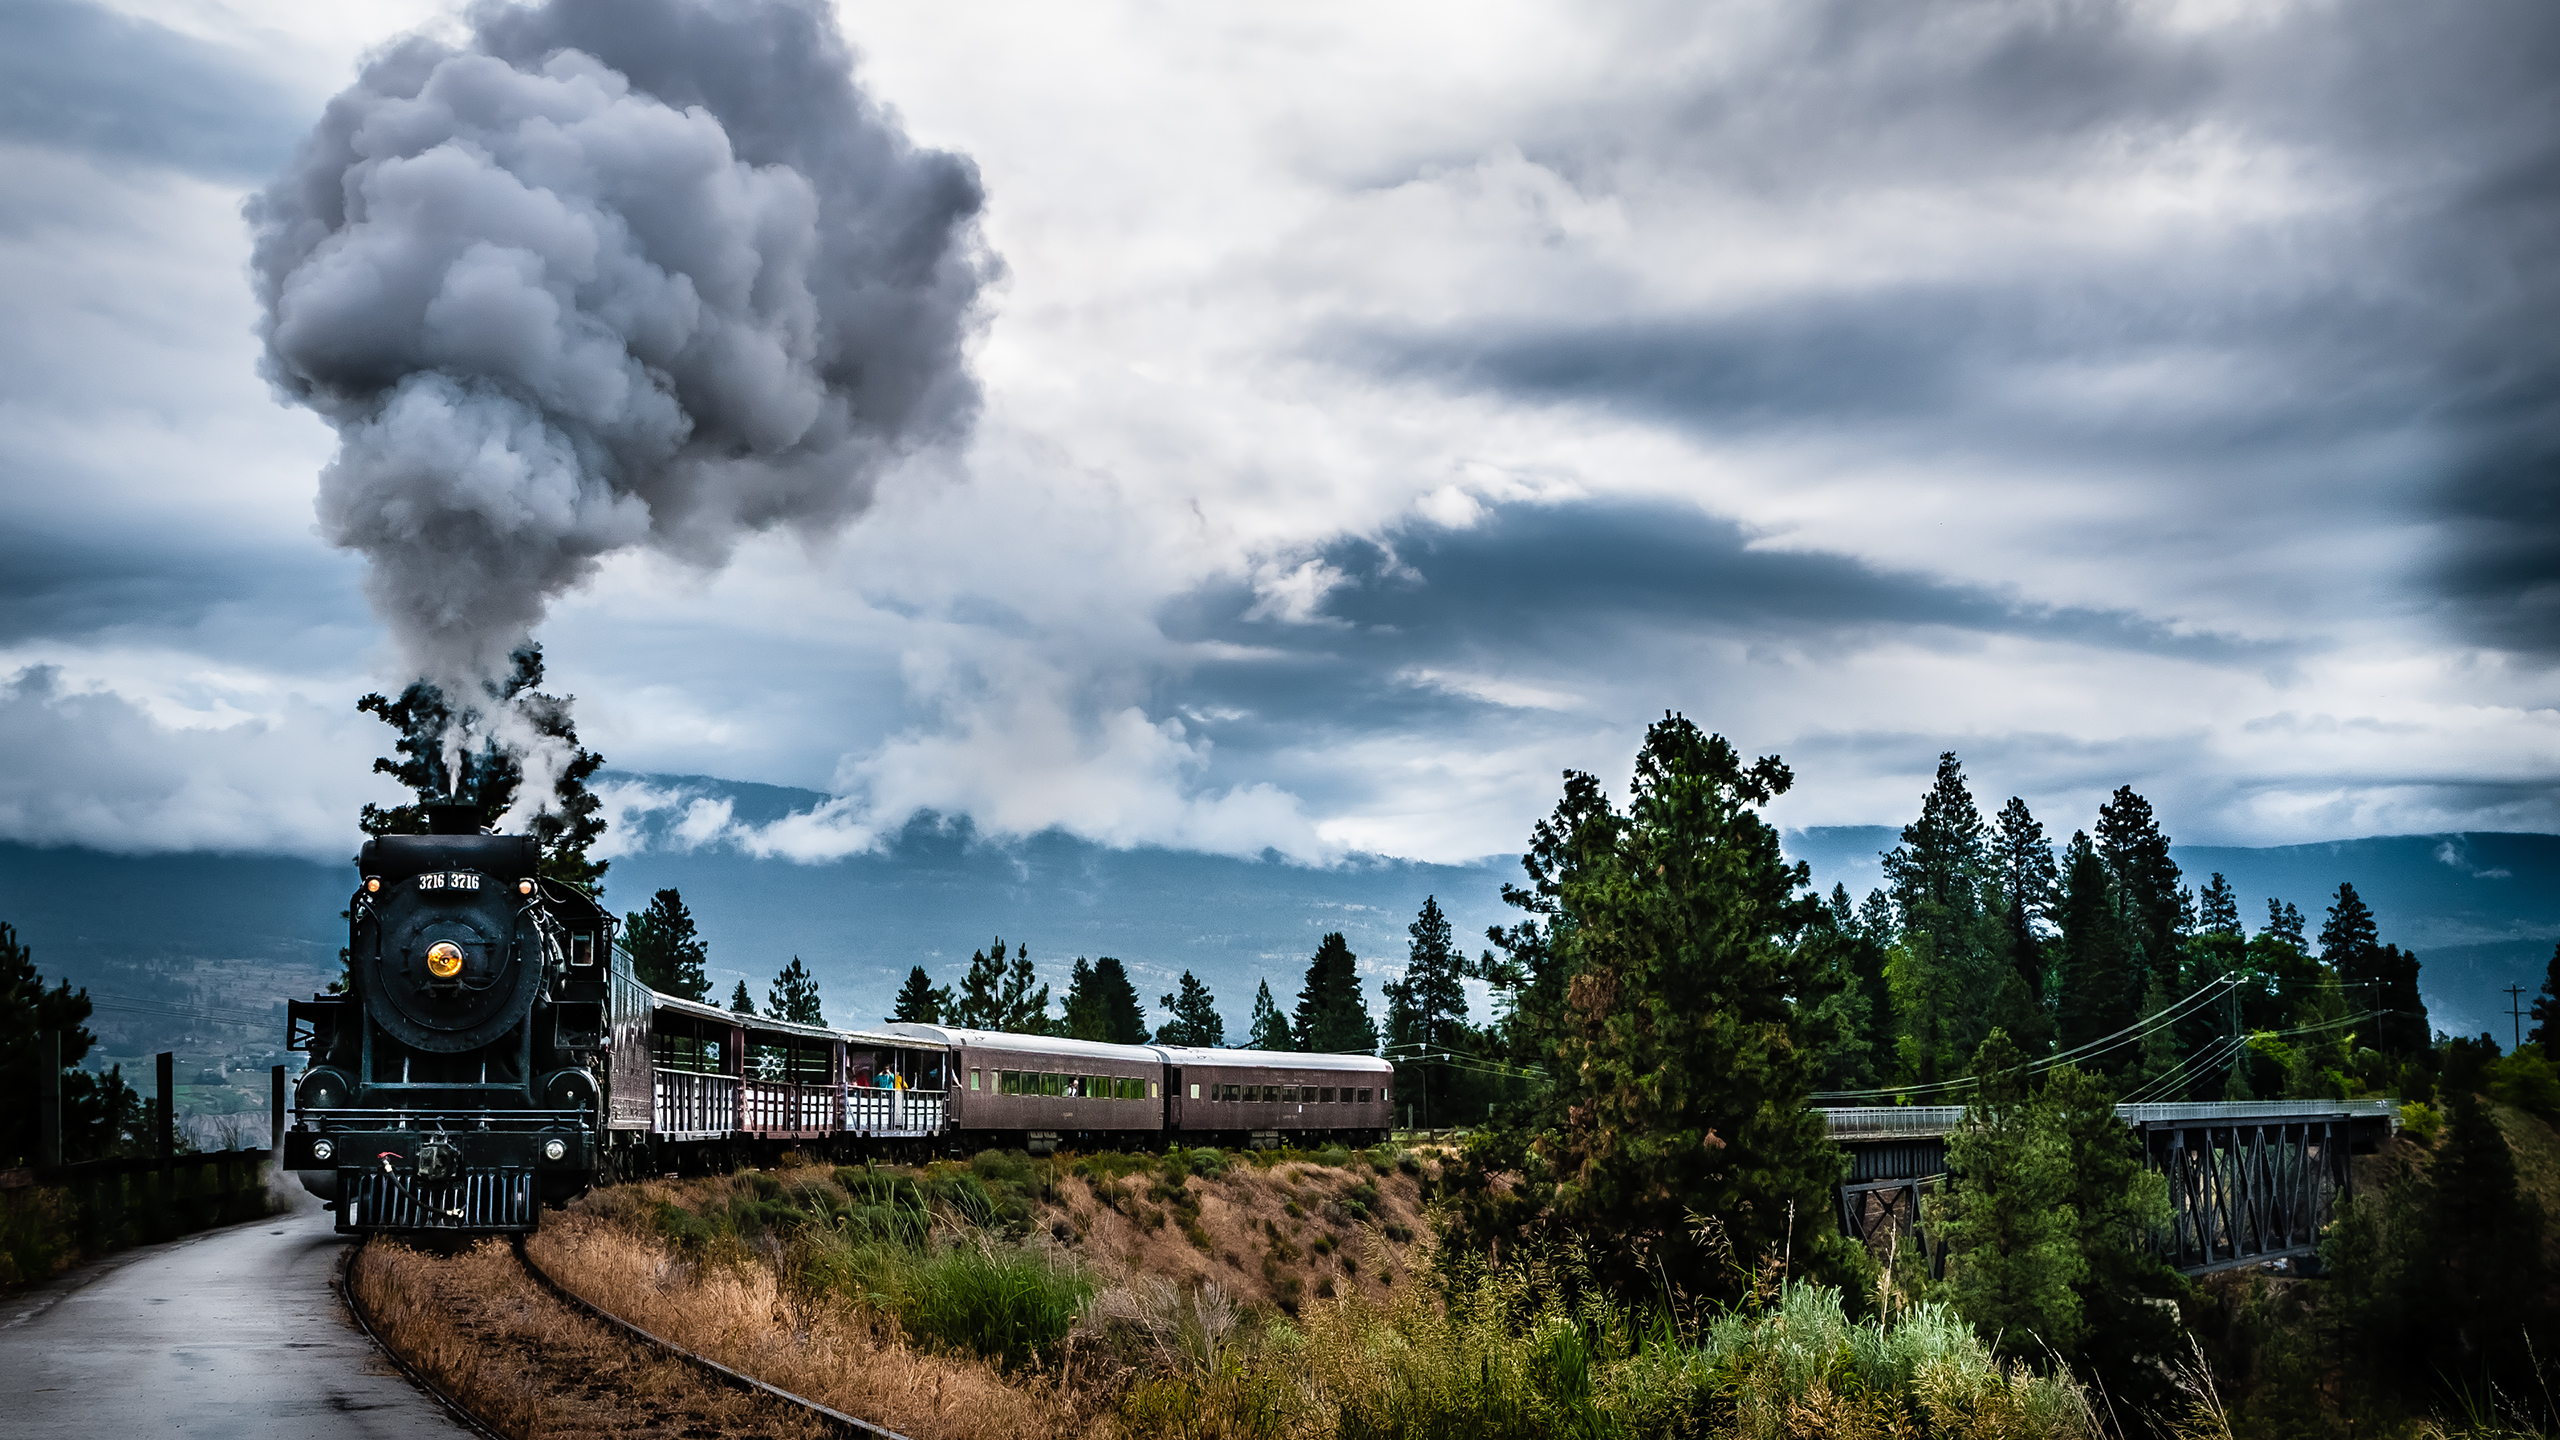 train_steam_2560x1440